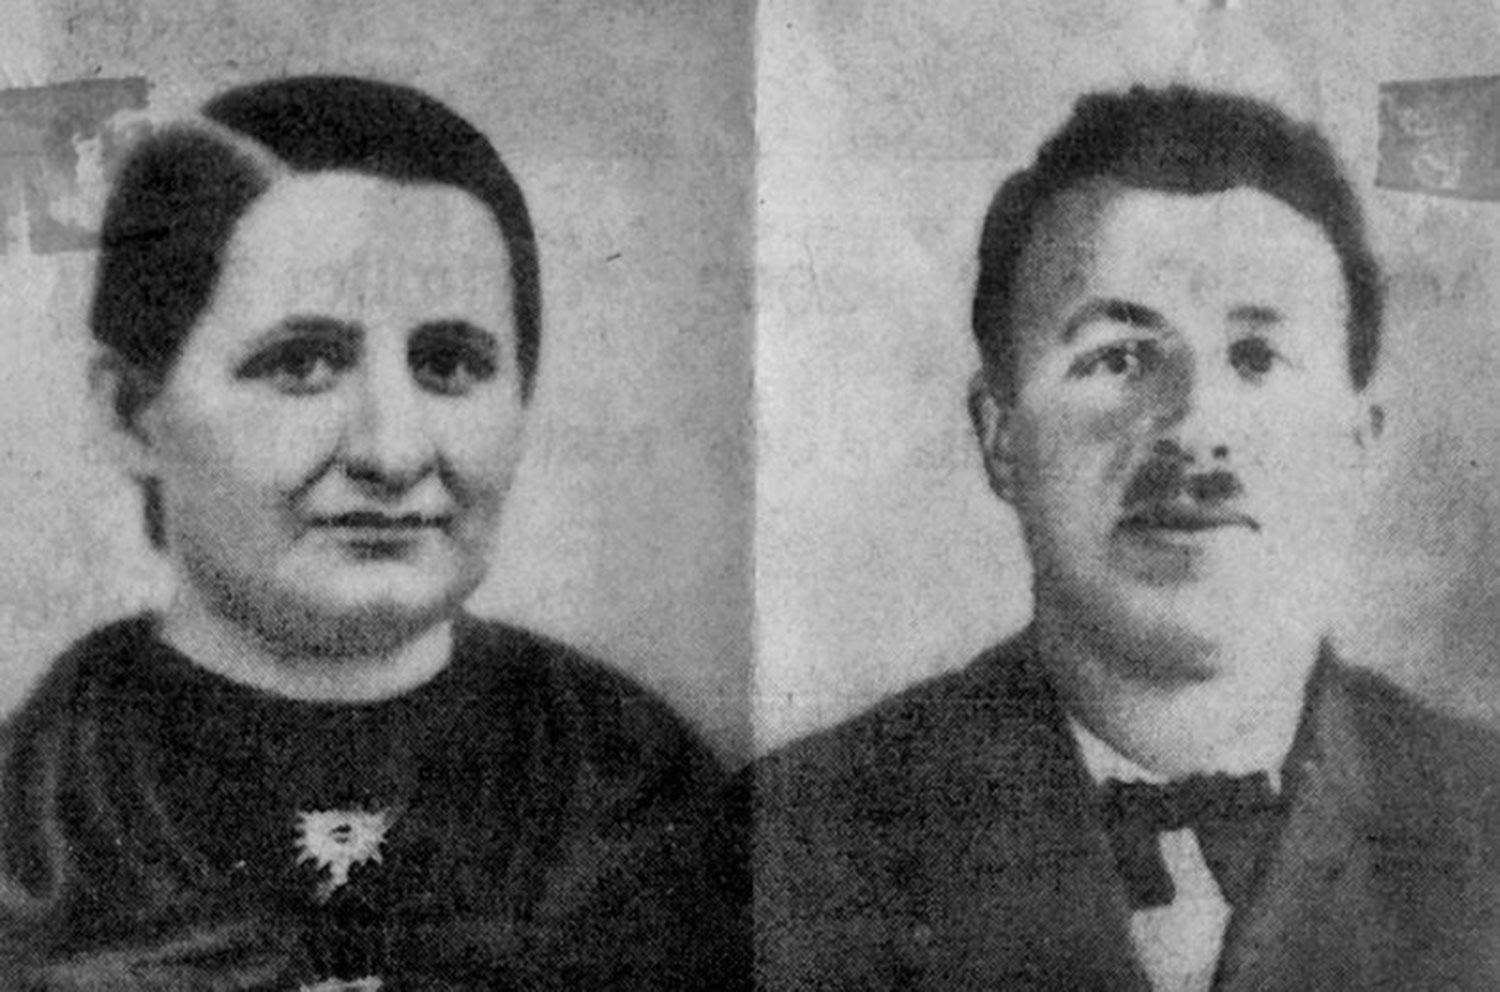 Marcelin and Francine Dumoulin went missing 75 years ago, with DNA tests now being conducted to confirm their bodies had been found